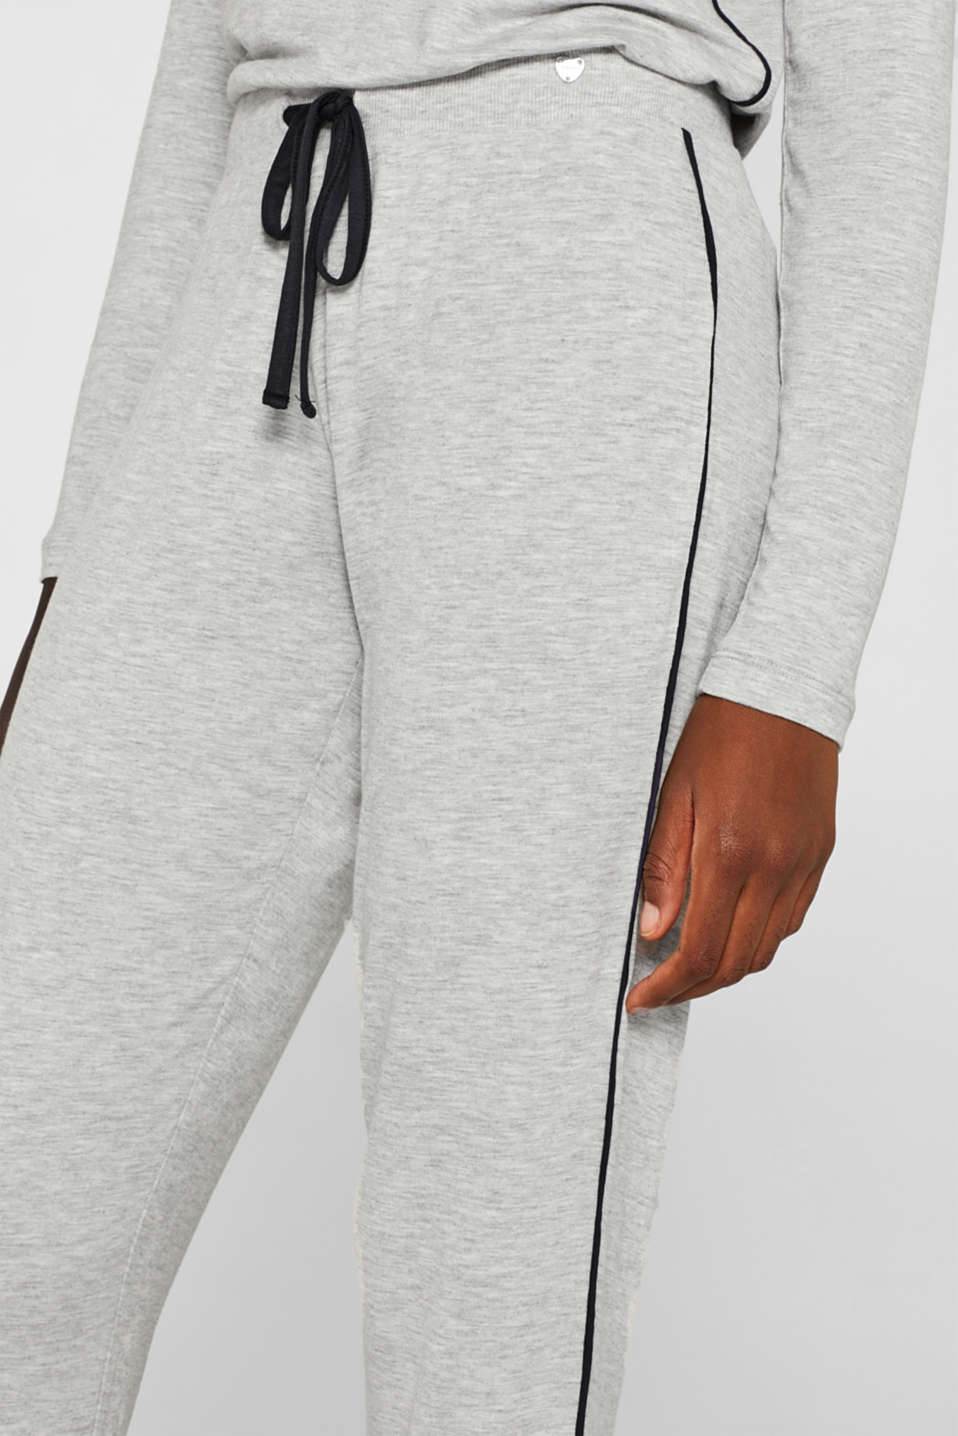 MELANGE mix + match stretch jersey trousers, LIGHT GREY, detail image number 2